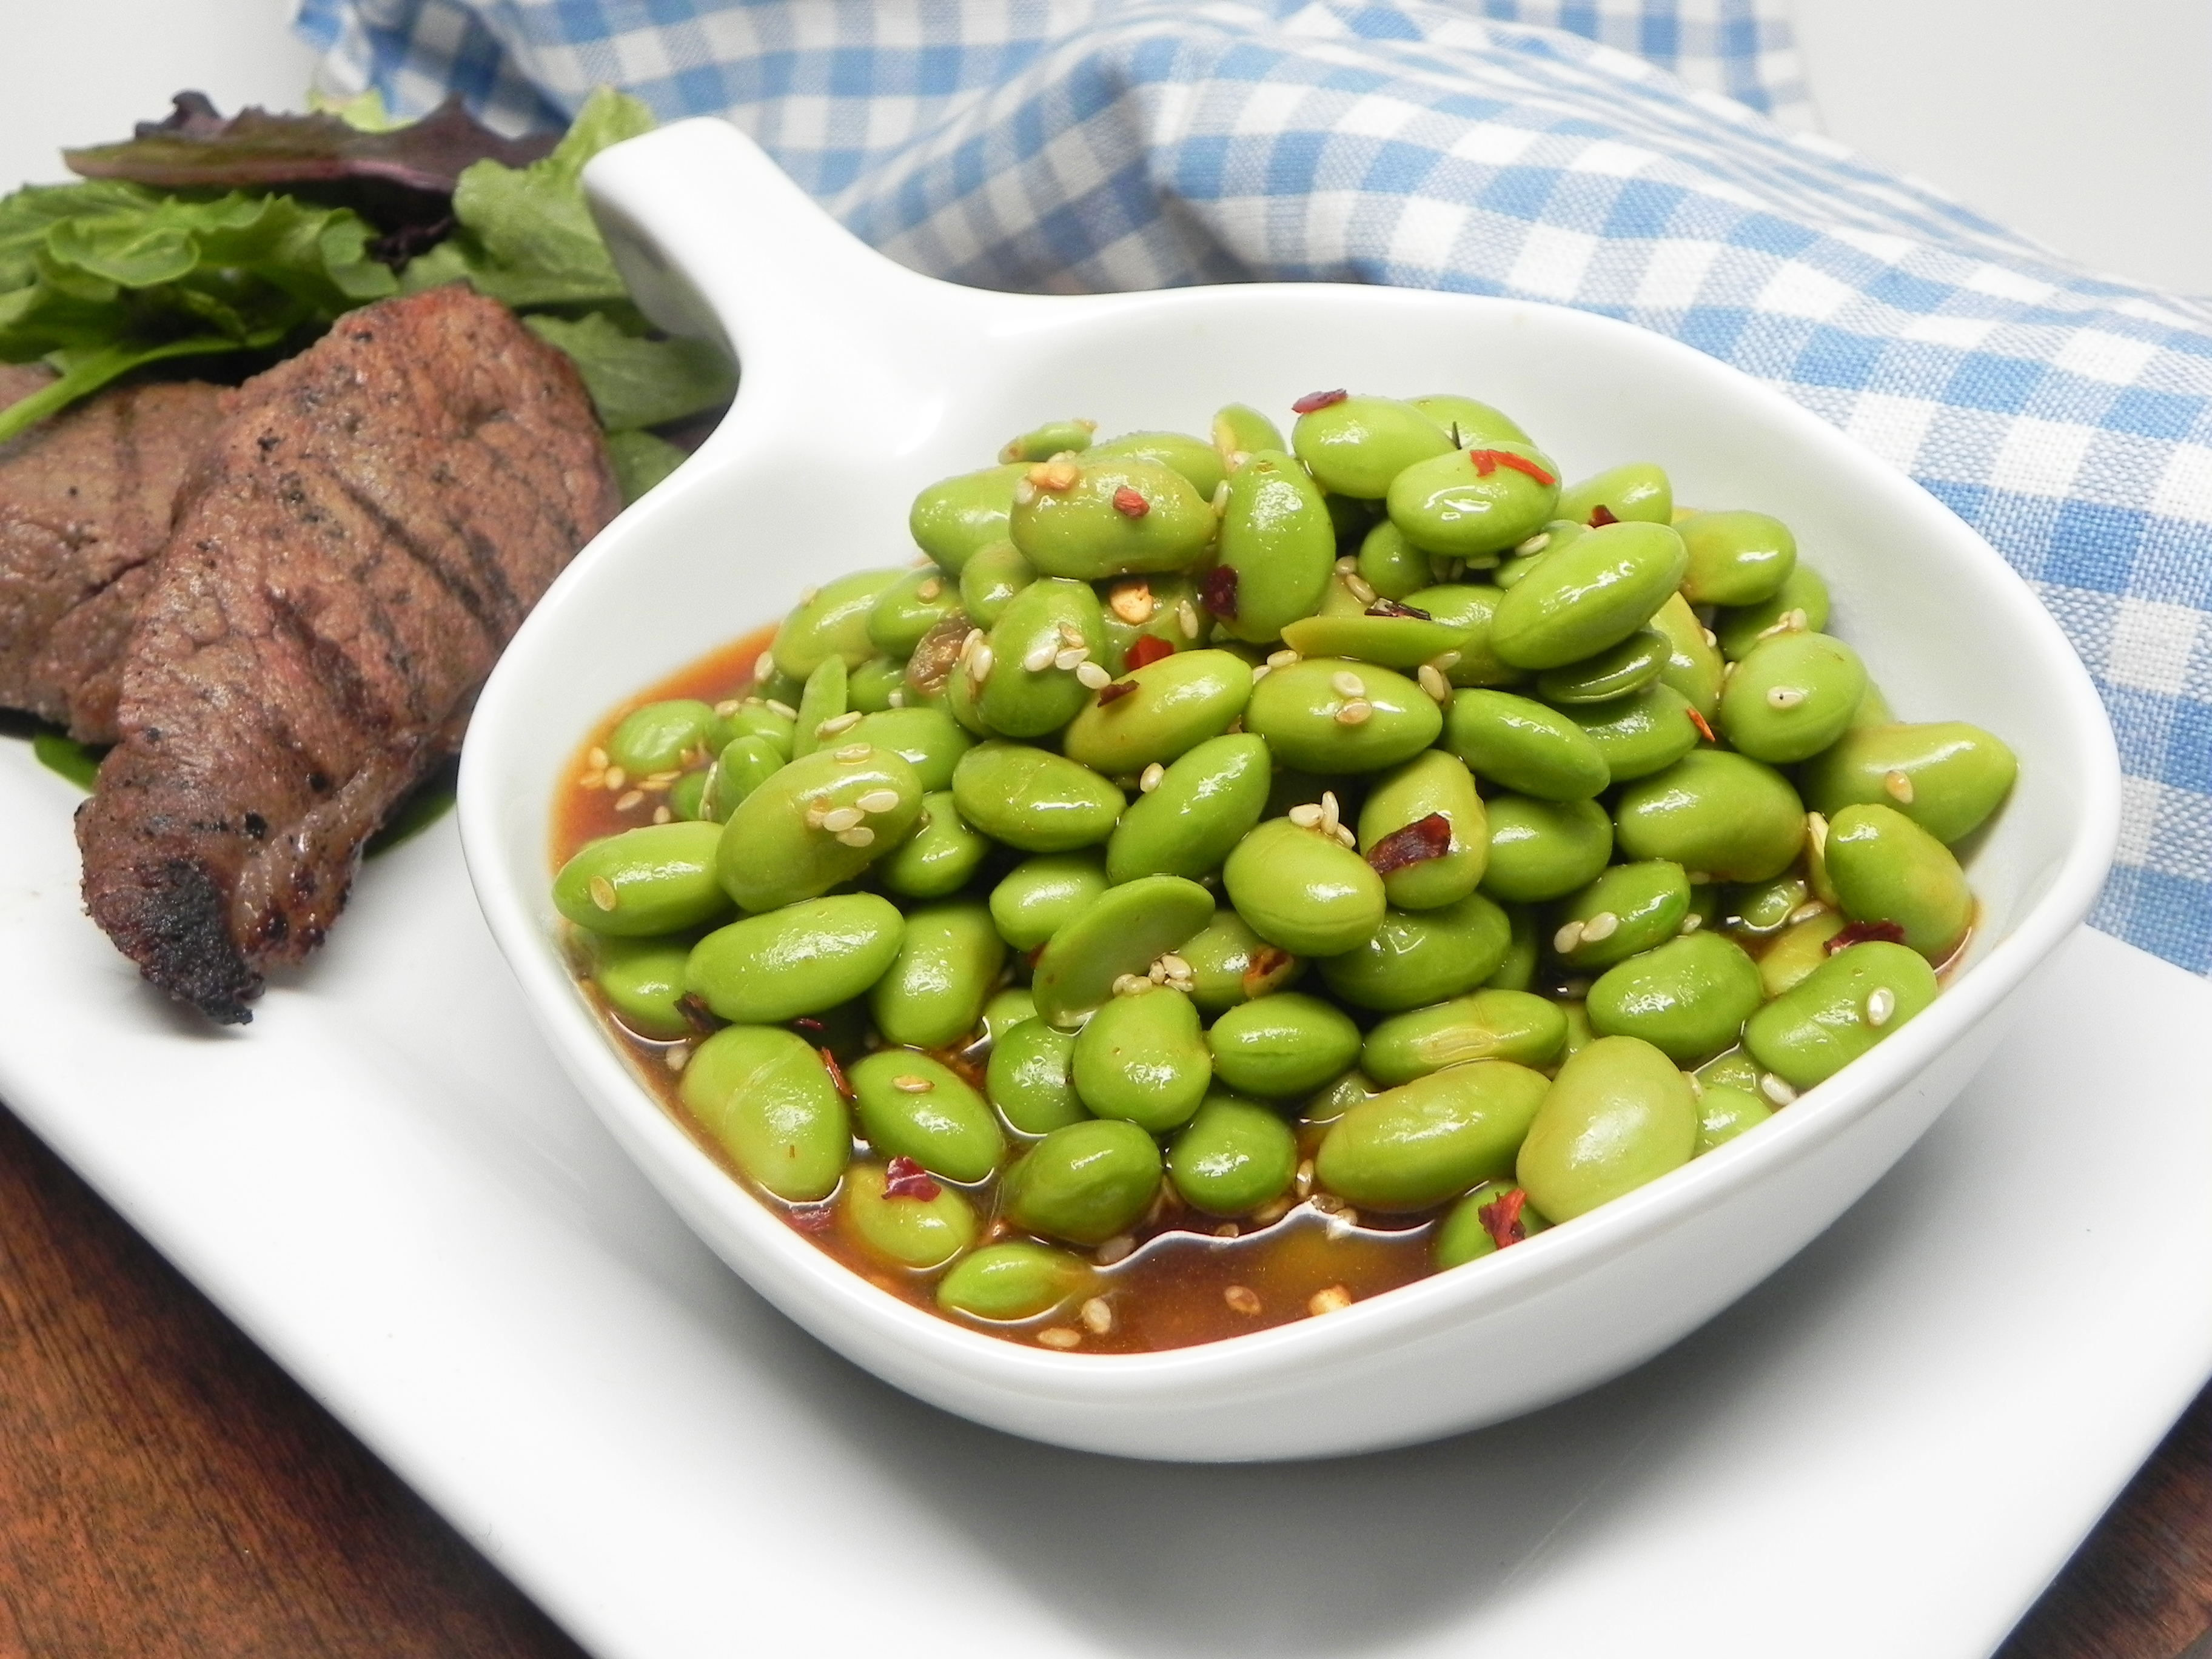 """Cook edamame over high heat with sesame oil, vinegar, oyster sauce, sriracha sauce, and sesame seeds, finishing with a sprinkle of red pepper flakes. """"A unique twist to traditional edamame,"""" says BandC. """"We had this at a restaurant and found oyster sauce is the key to this dish!"""""""